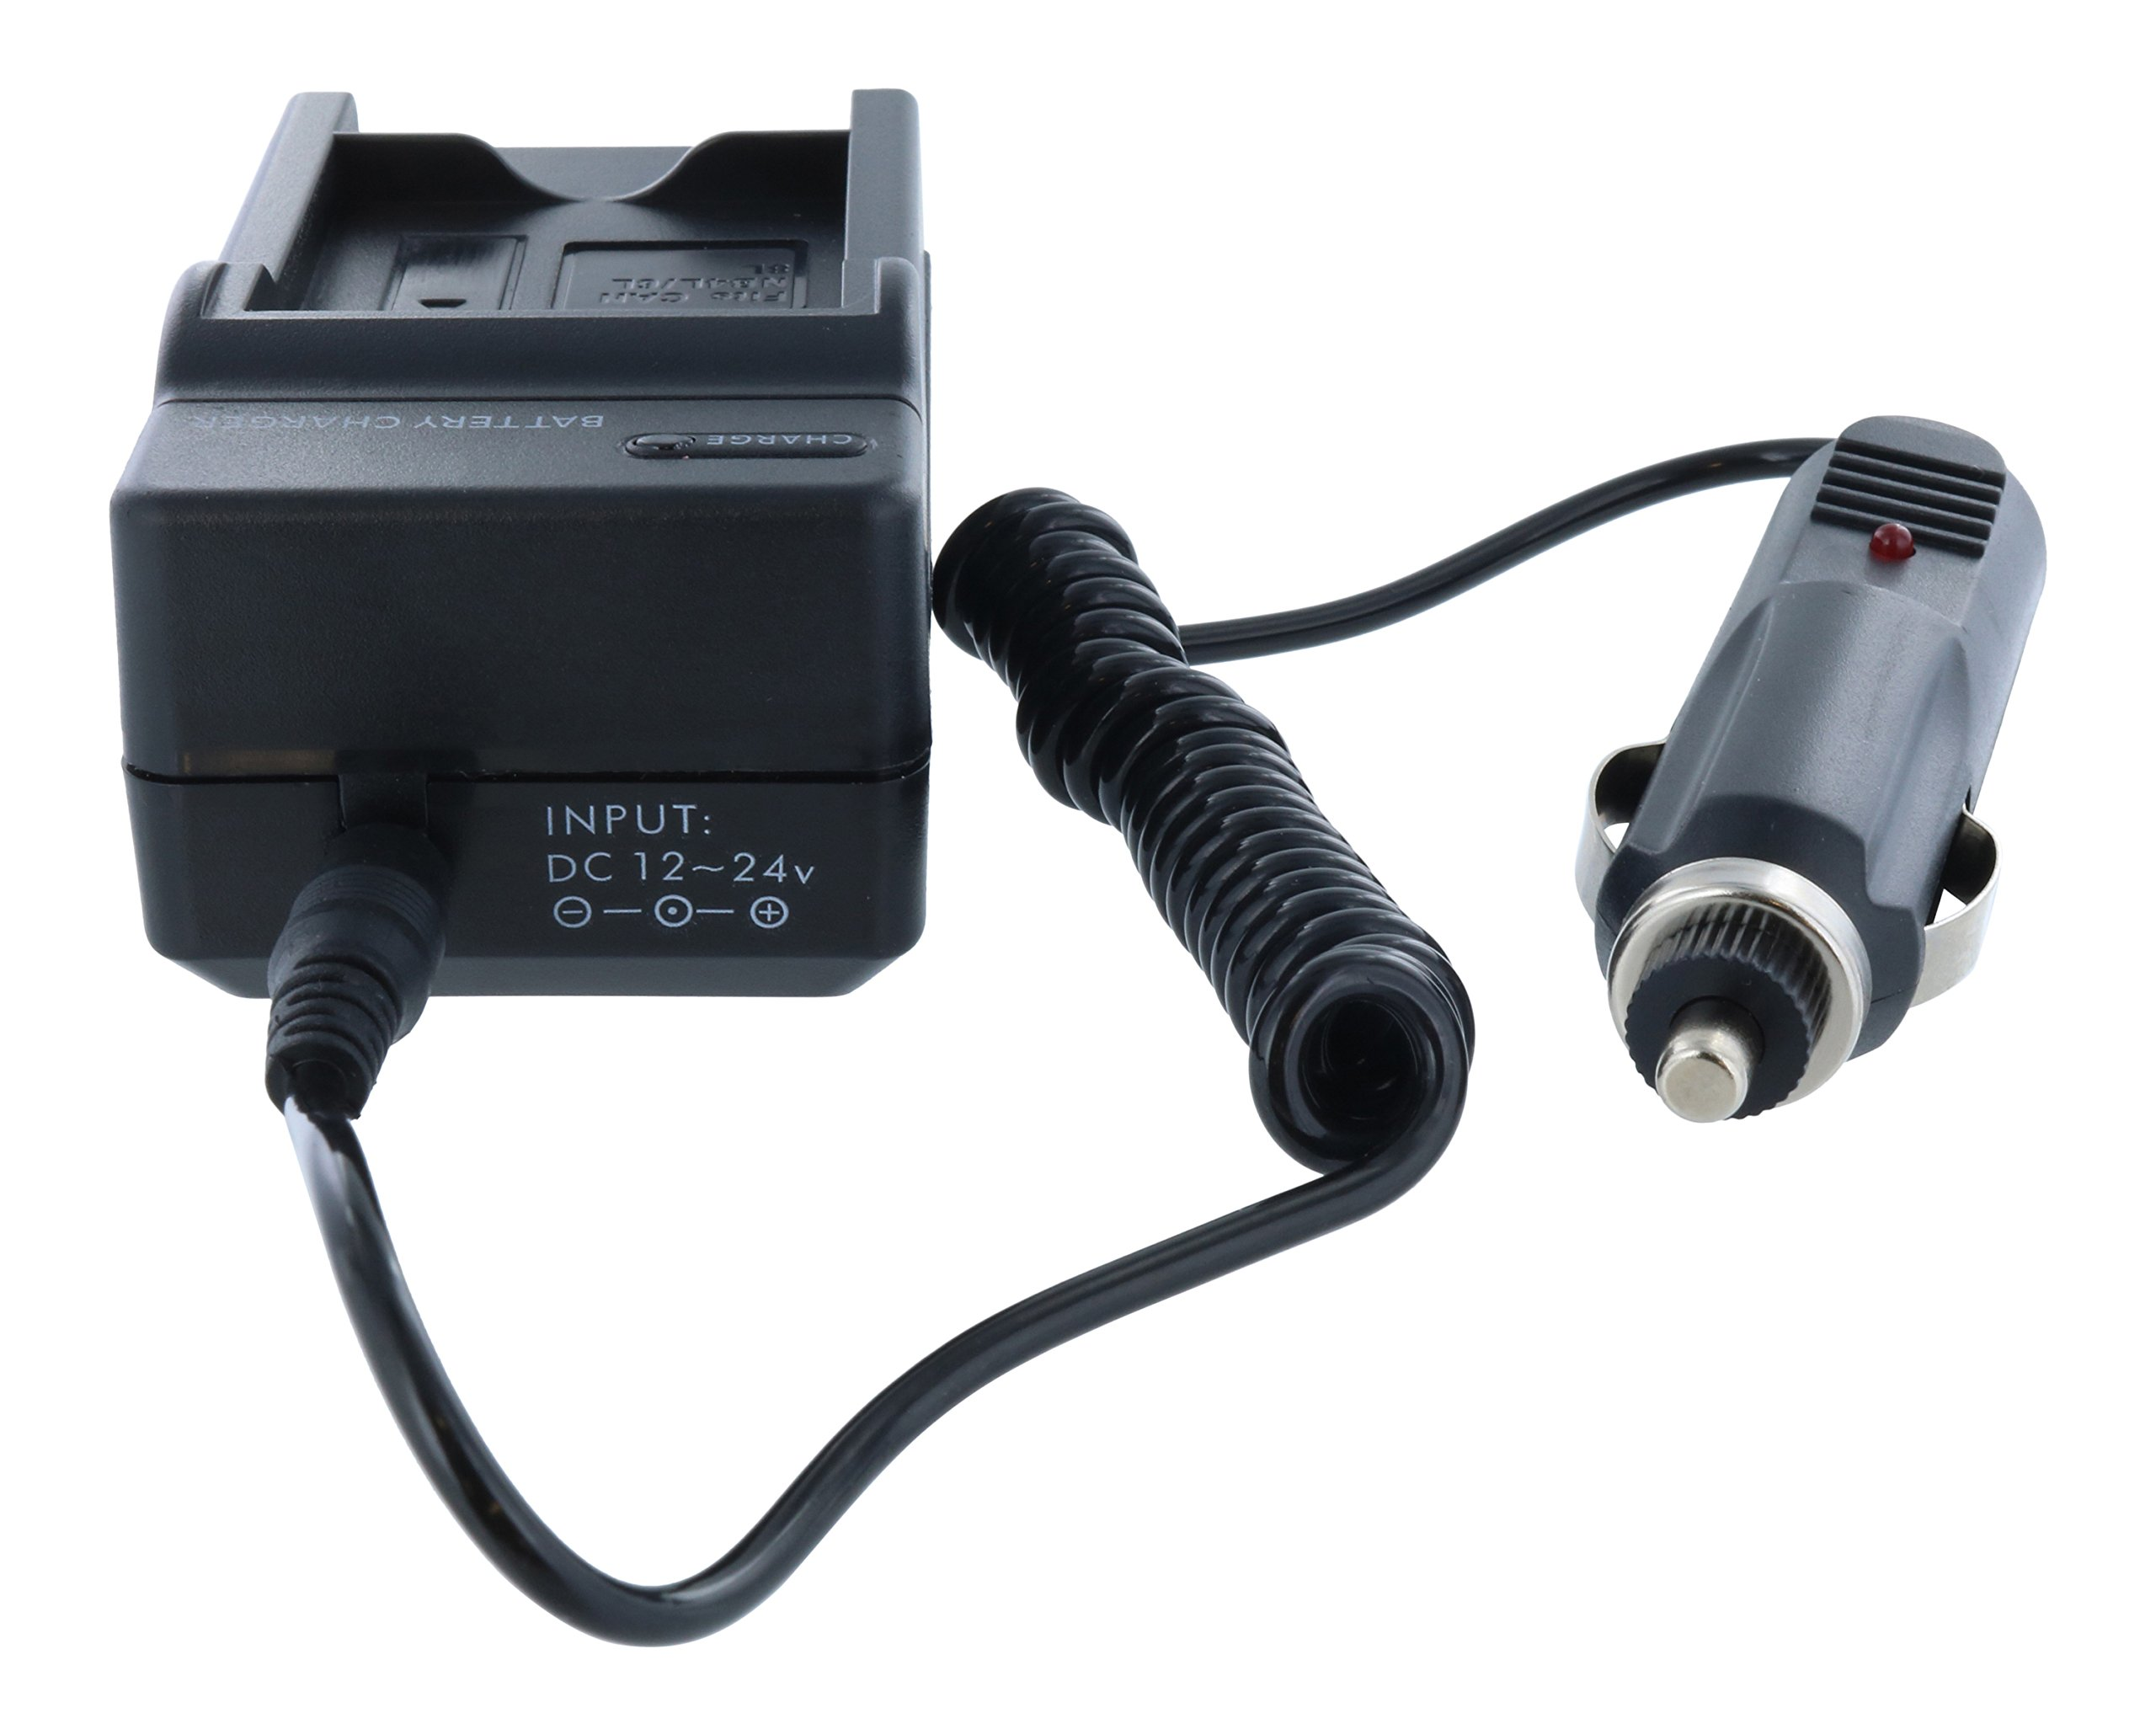 TechFuel Battery Charger Kit for Panasonic HDC-HS9 Camcorder - For Home, Car and Travel Use by TechFuel (Image #6)